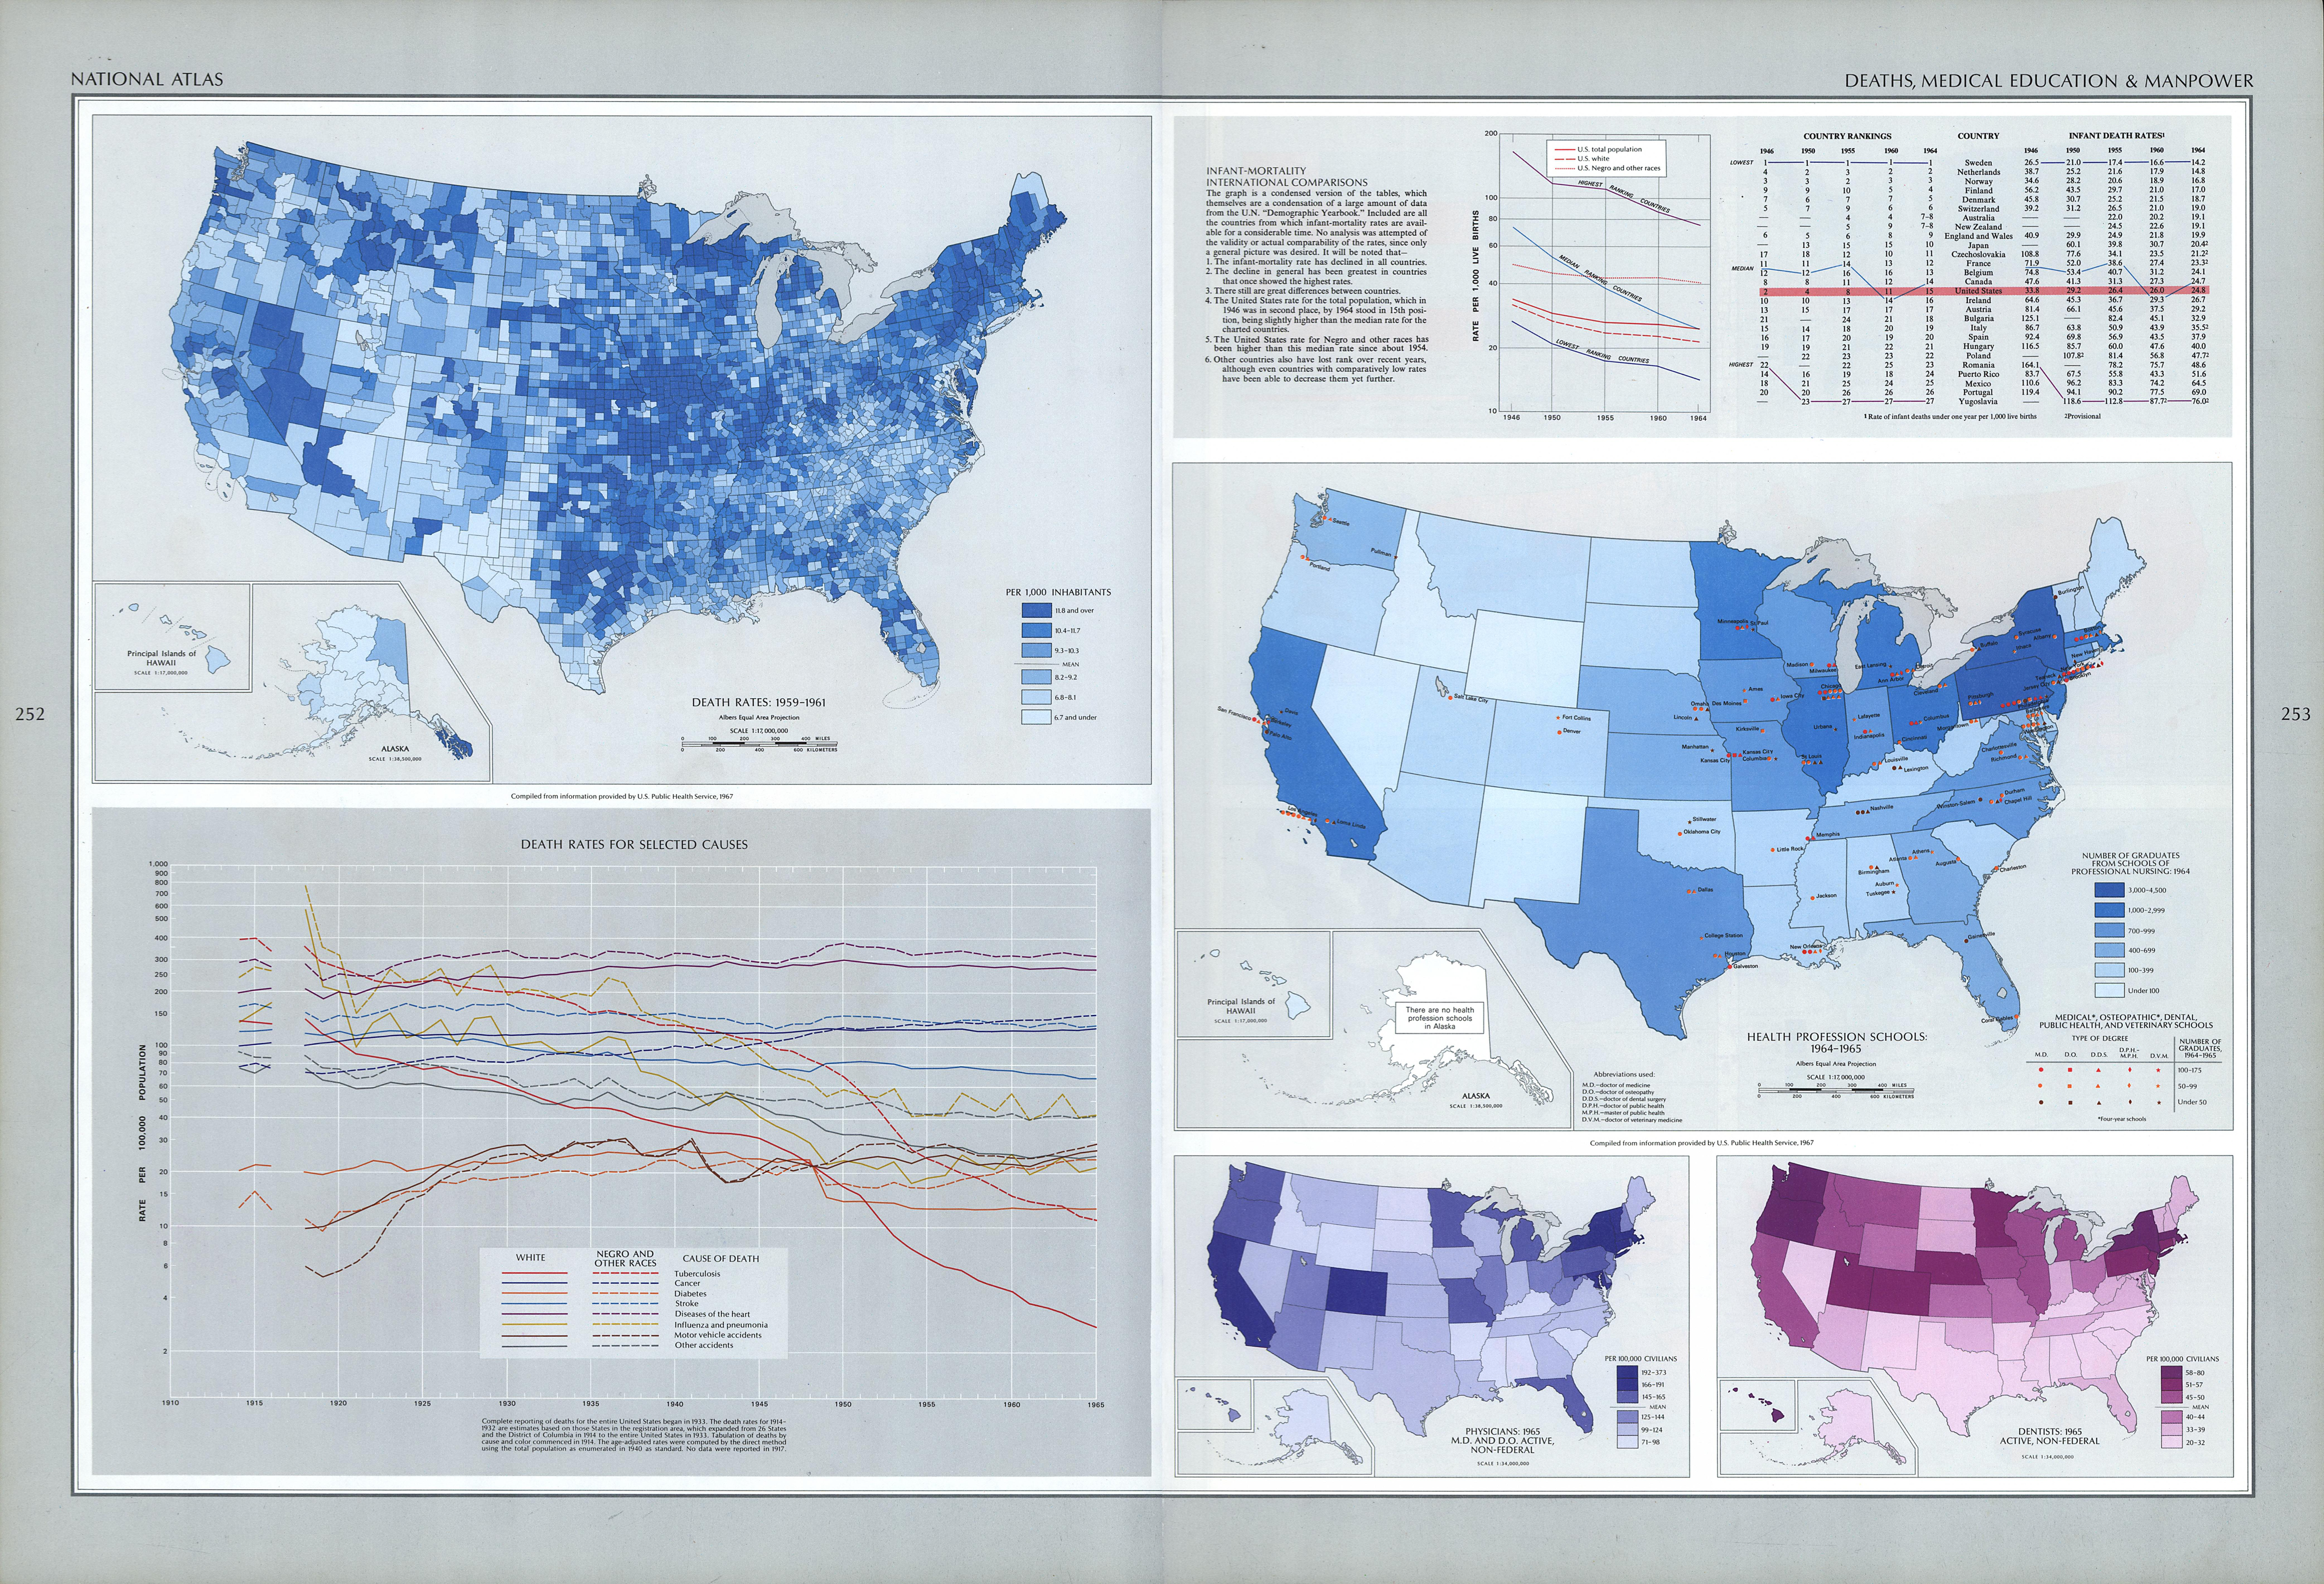 United States Deaths, Medical Education and Manpower Map